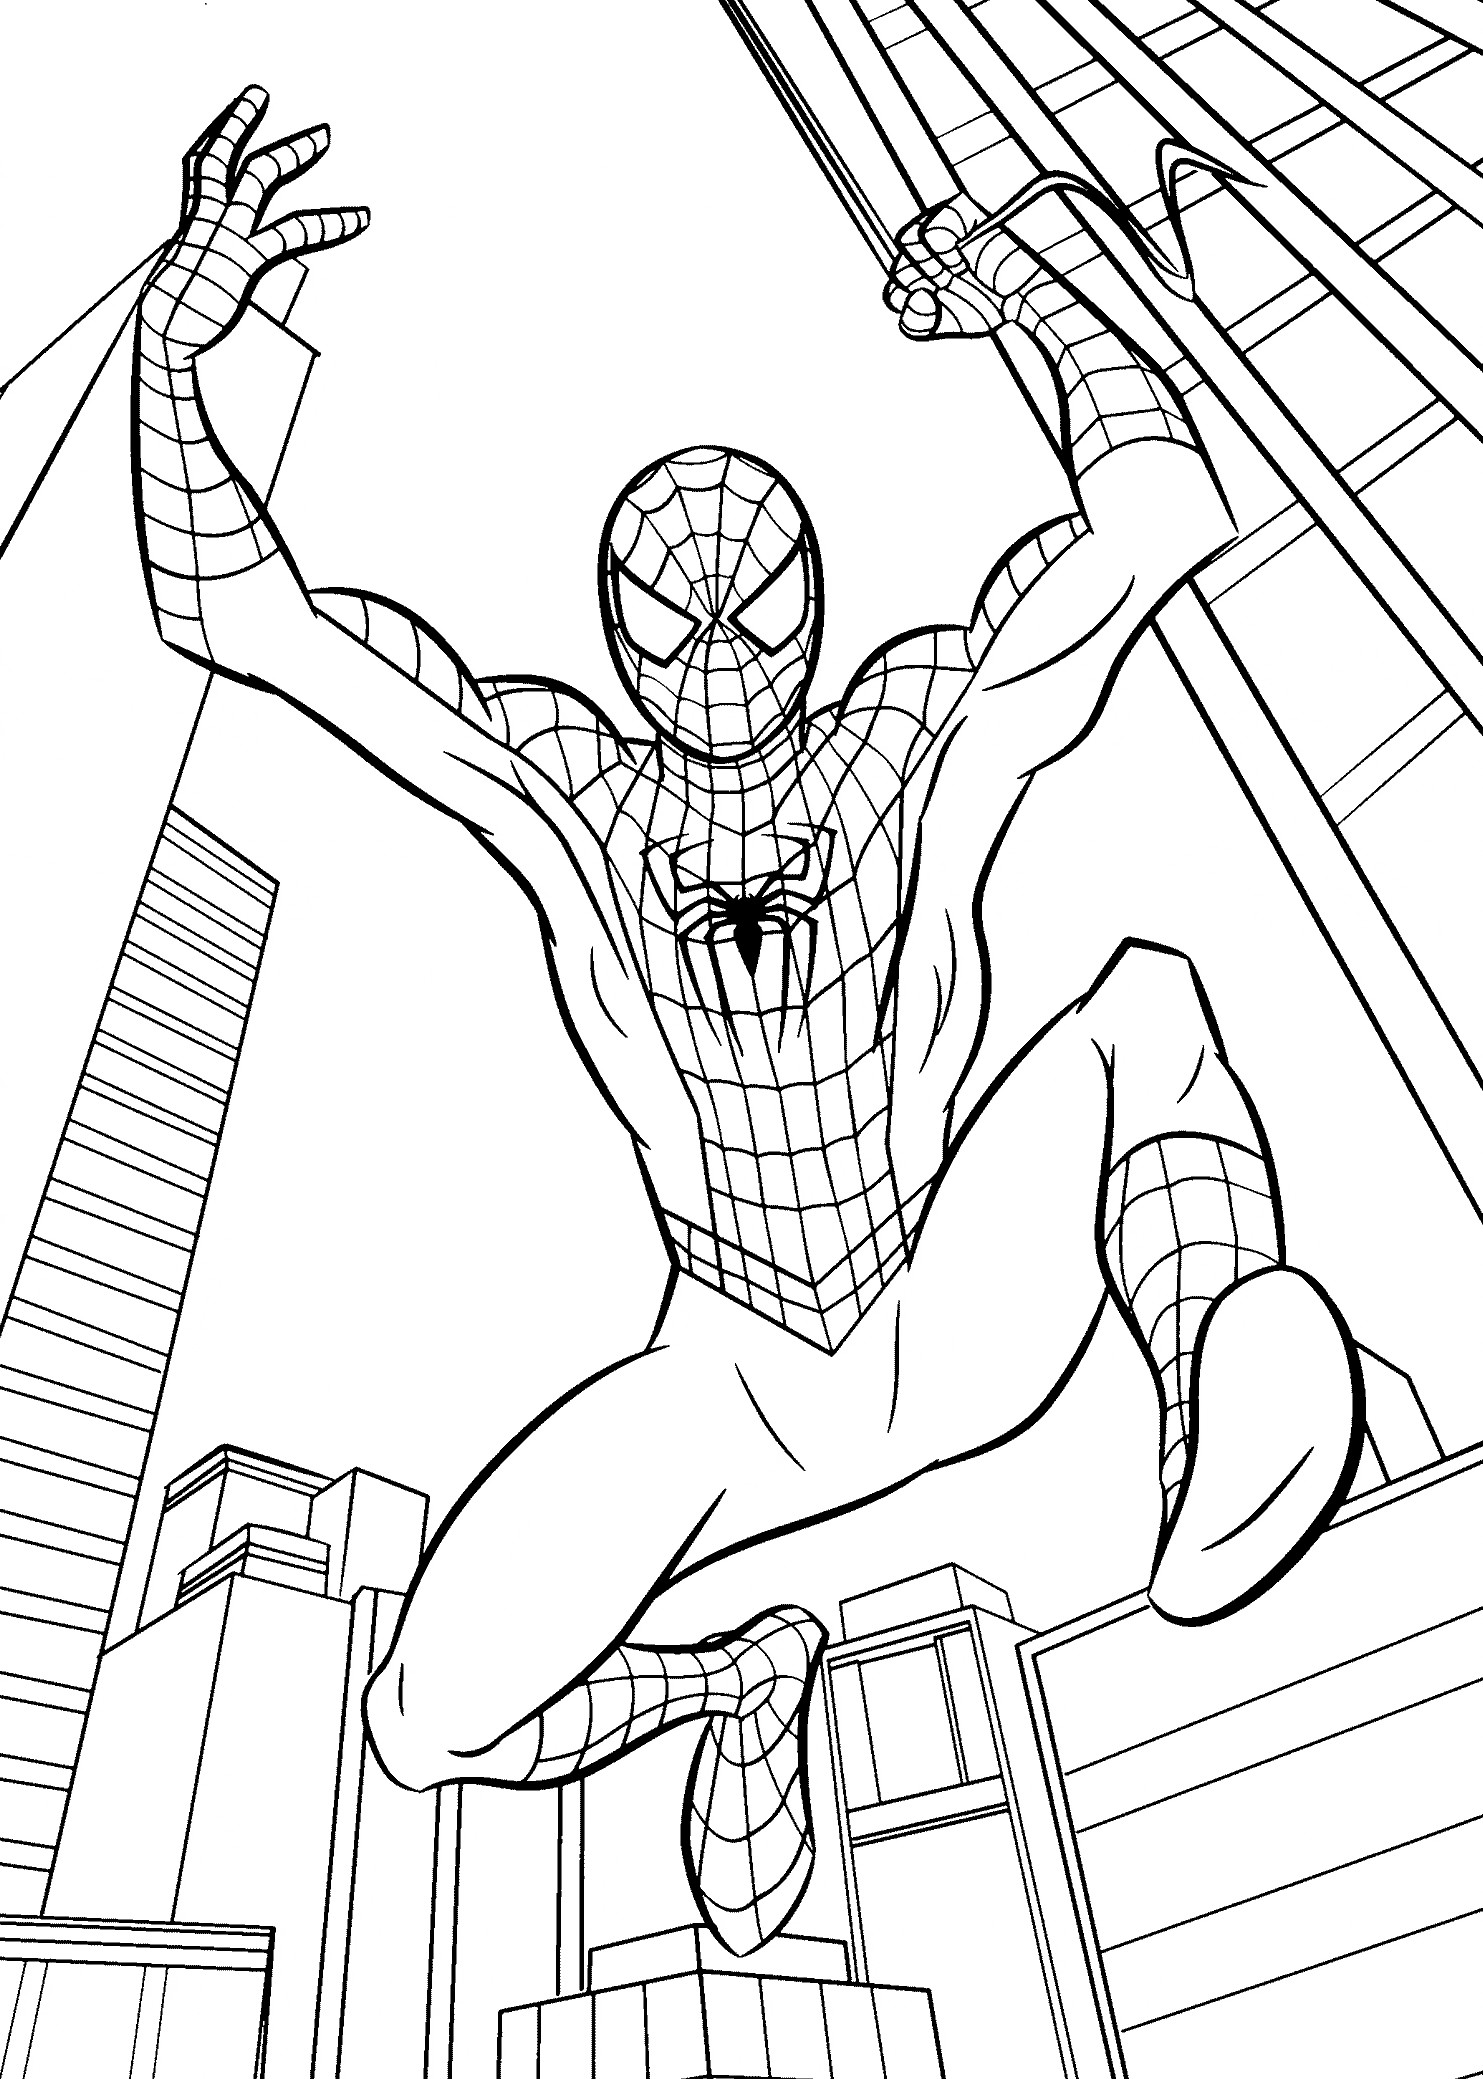 spiderman happy birthday coloring pages marvel happy birthday coloring pages happy pages spiderman coloring birthday